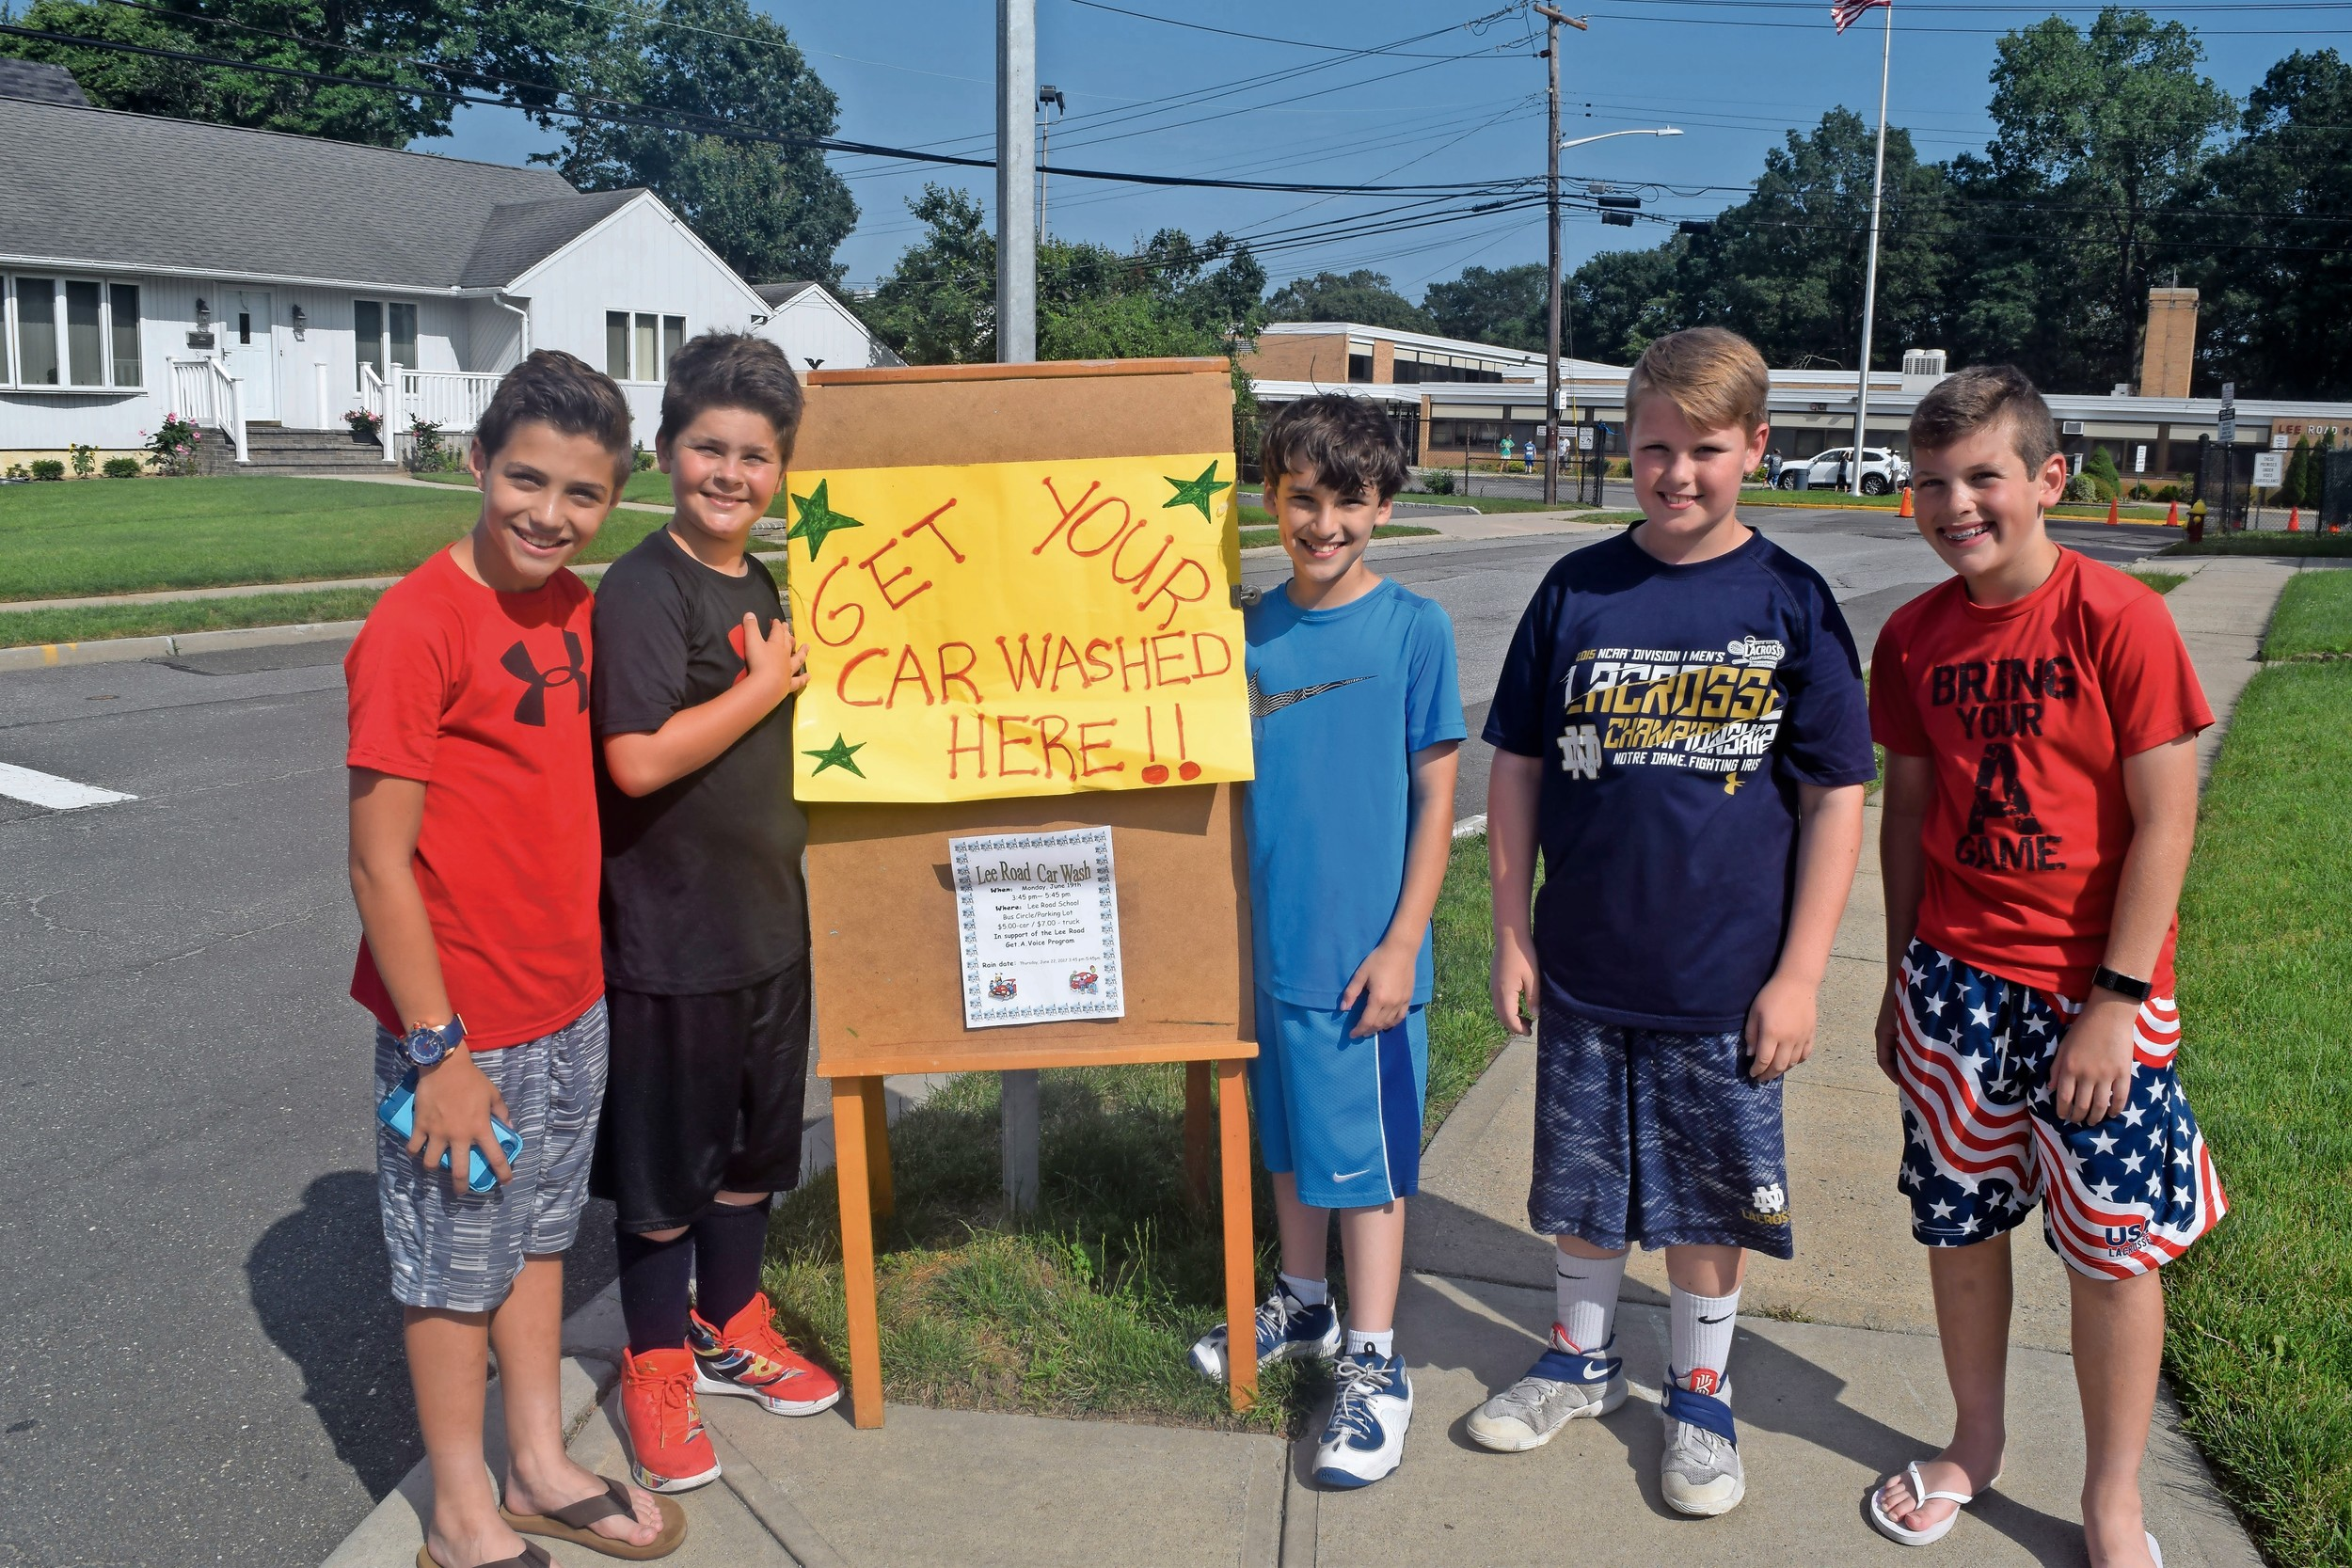 Fifth-graders Ralph Boccio, left Eric Sharp, Dylan Livigni, Ryan Sheehan and Ryan Muckle urged Wantagh, Seaford and Levittown residents to stop by the car wash.